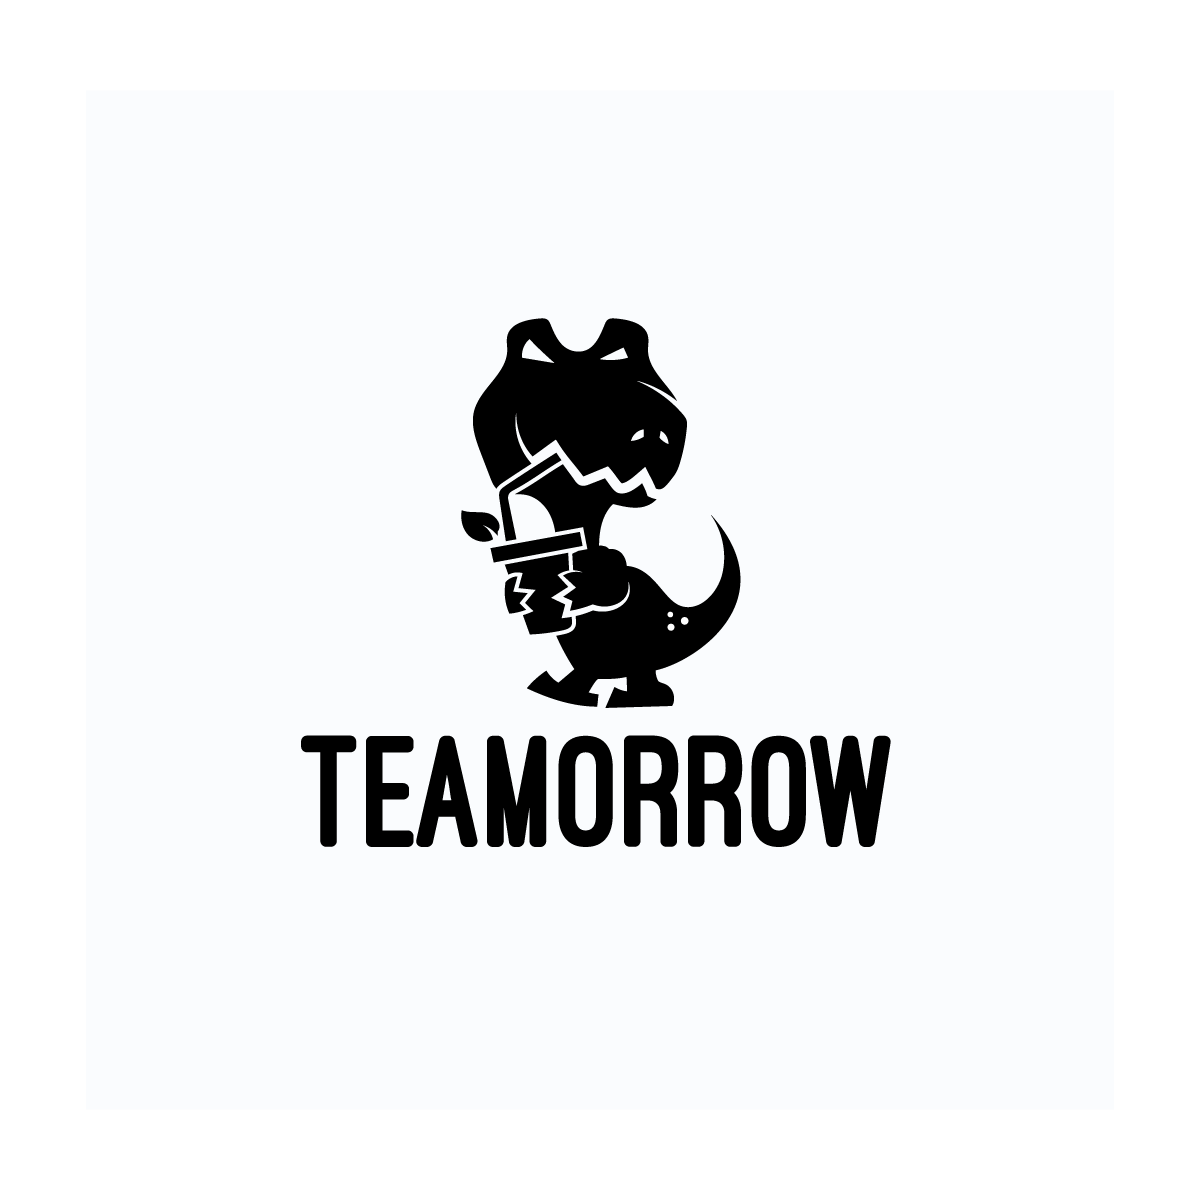 Teamorrow t rex logo